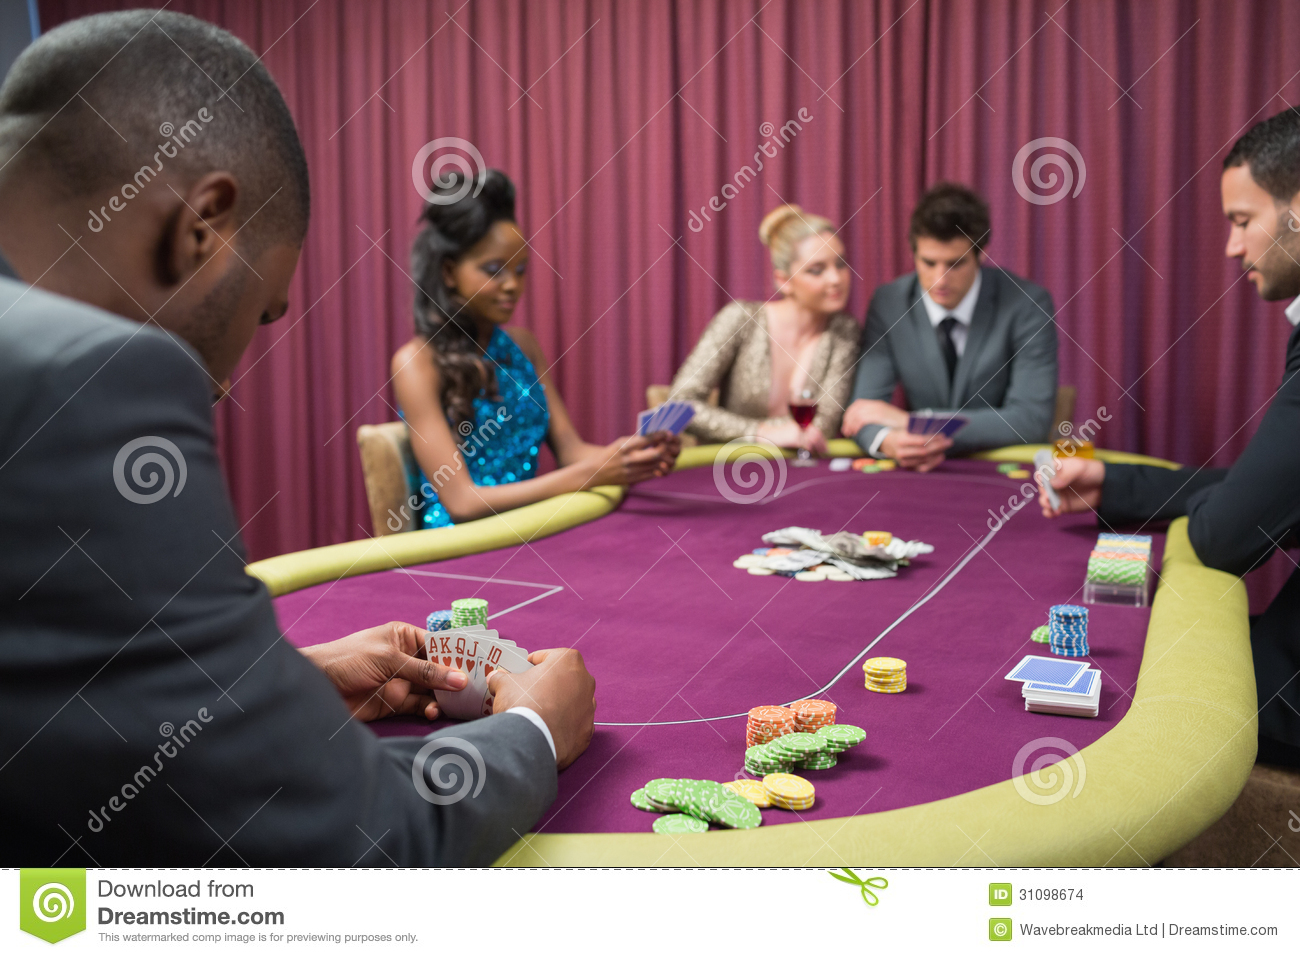 Jun 11, · The two main reasons are to avoid making mistakes, and to avoid giving away information.Years ago, I looked down at my cards, saw AA, and raised.One caller.The flop came AA6.The guy checks to me, so I put out a stiff bet.He raised me! This gu.